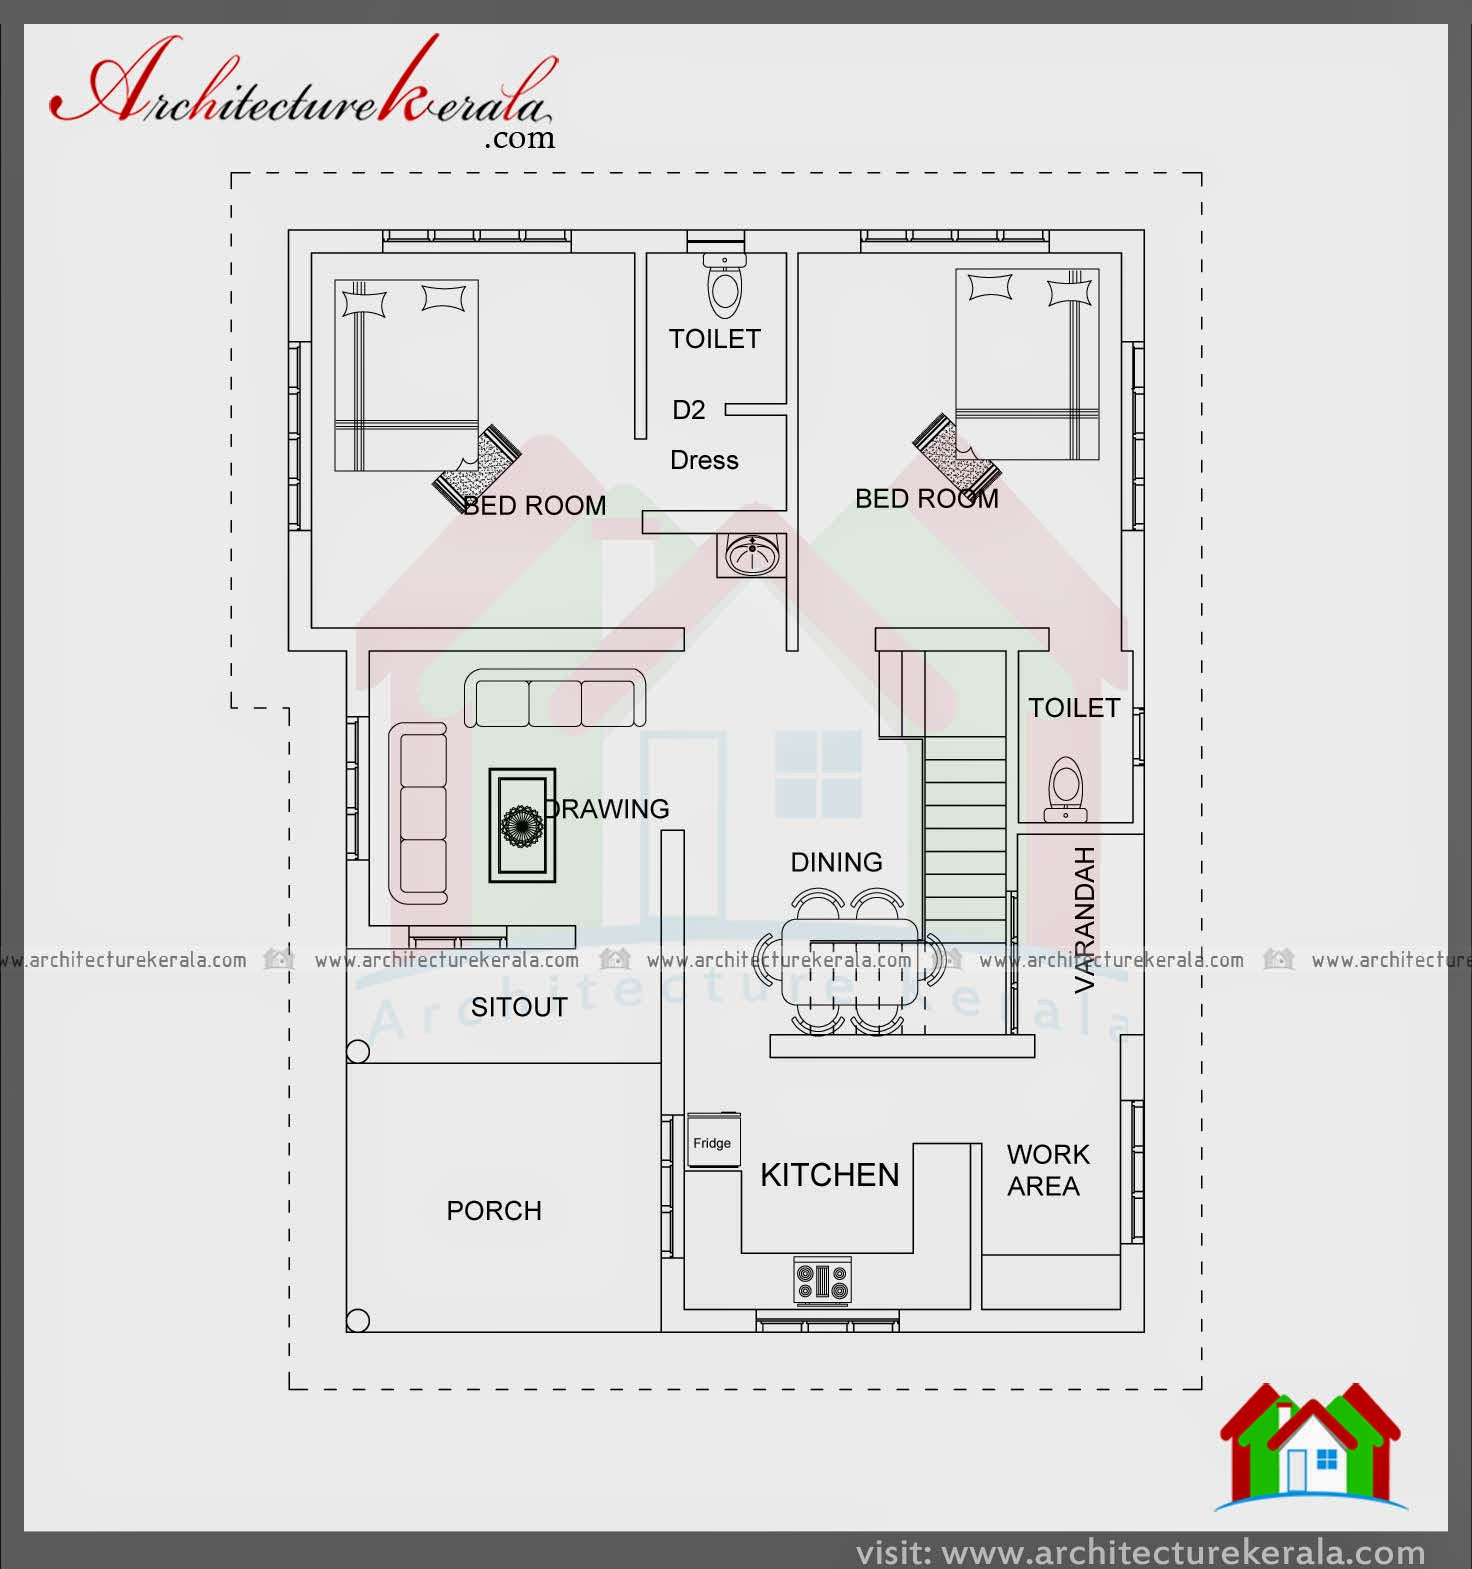 Front Elevation in addition Awesome 2 Story 4 Bedroom House Plans 7 Simple 2 Story House Floor Plans moreover One Story Craftsman House Plans moreover Create Any 2d Civil Plans In Autocad together with Car Garage Carport Excellent Floor Plans. on beautiful house with 4 car garage